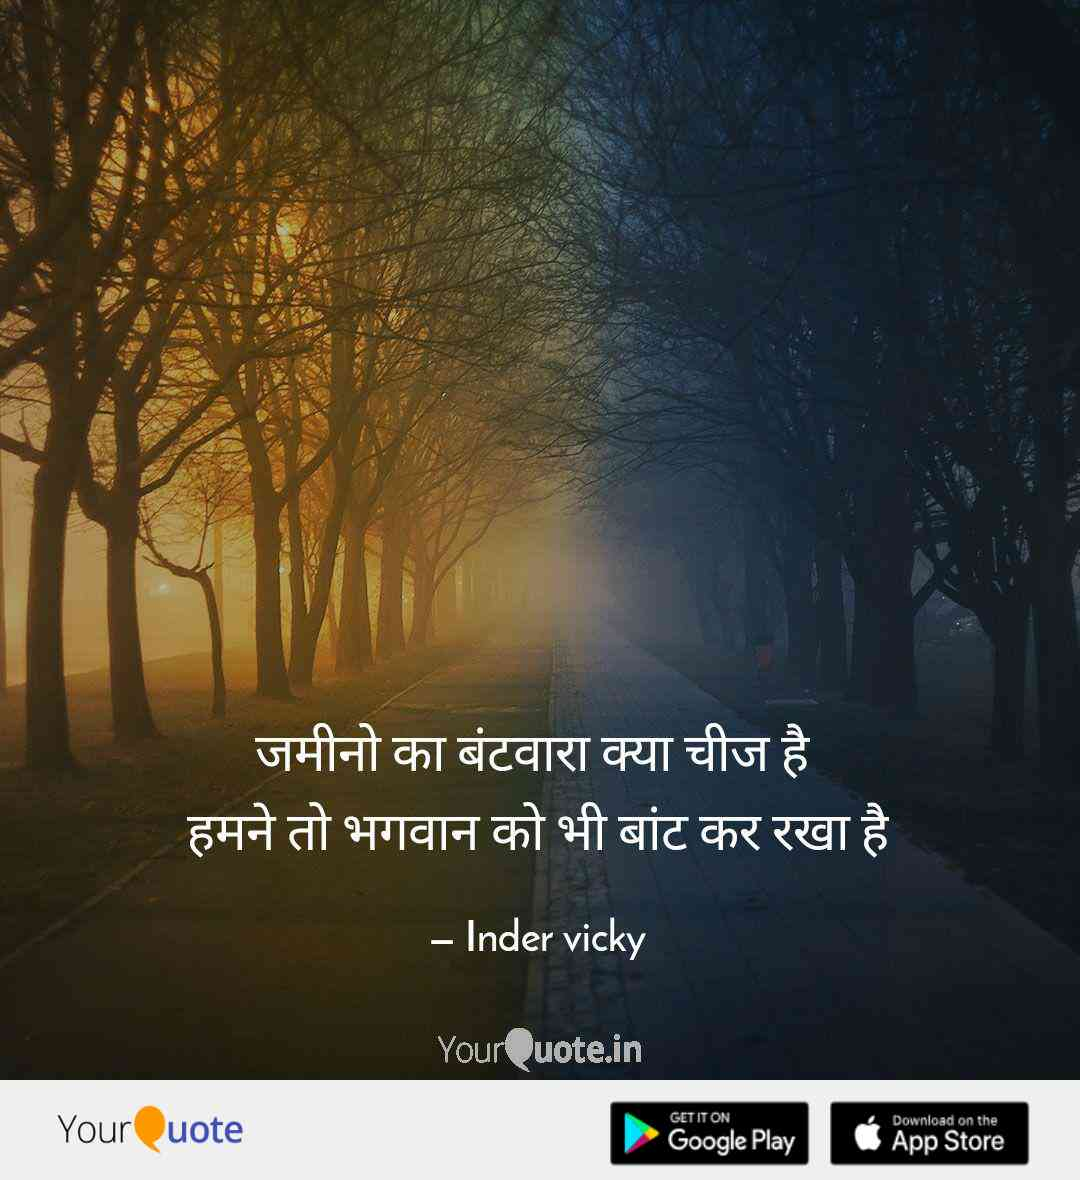 Inder Vicky Quotes Indervicky14 Twitter